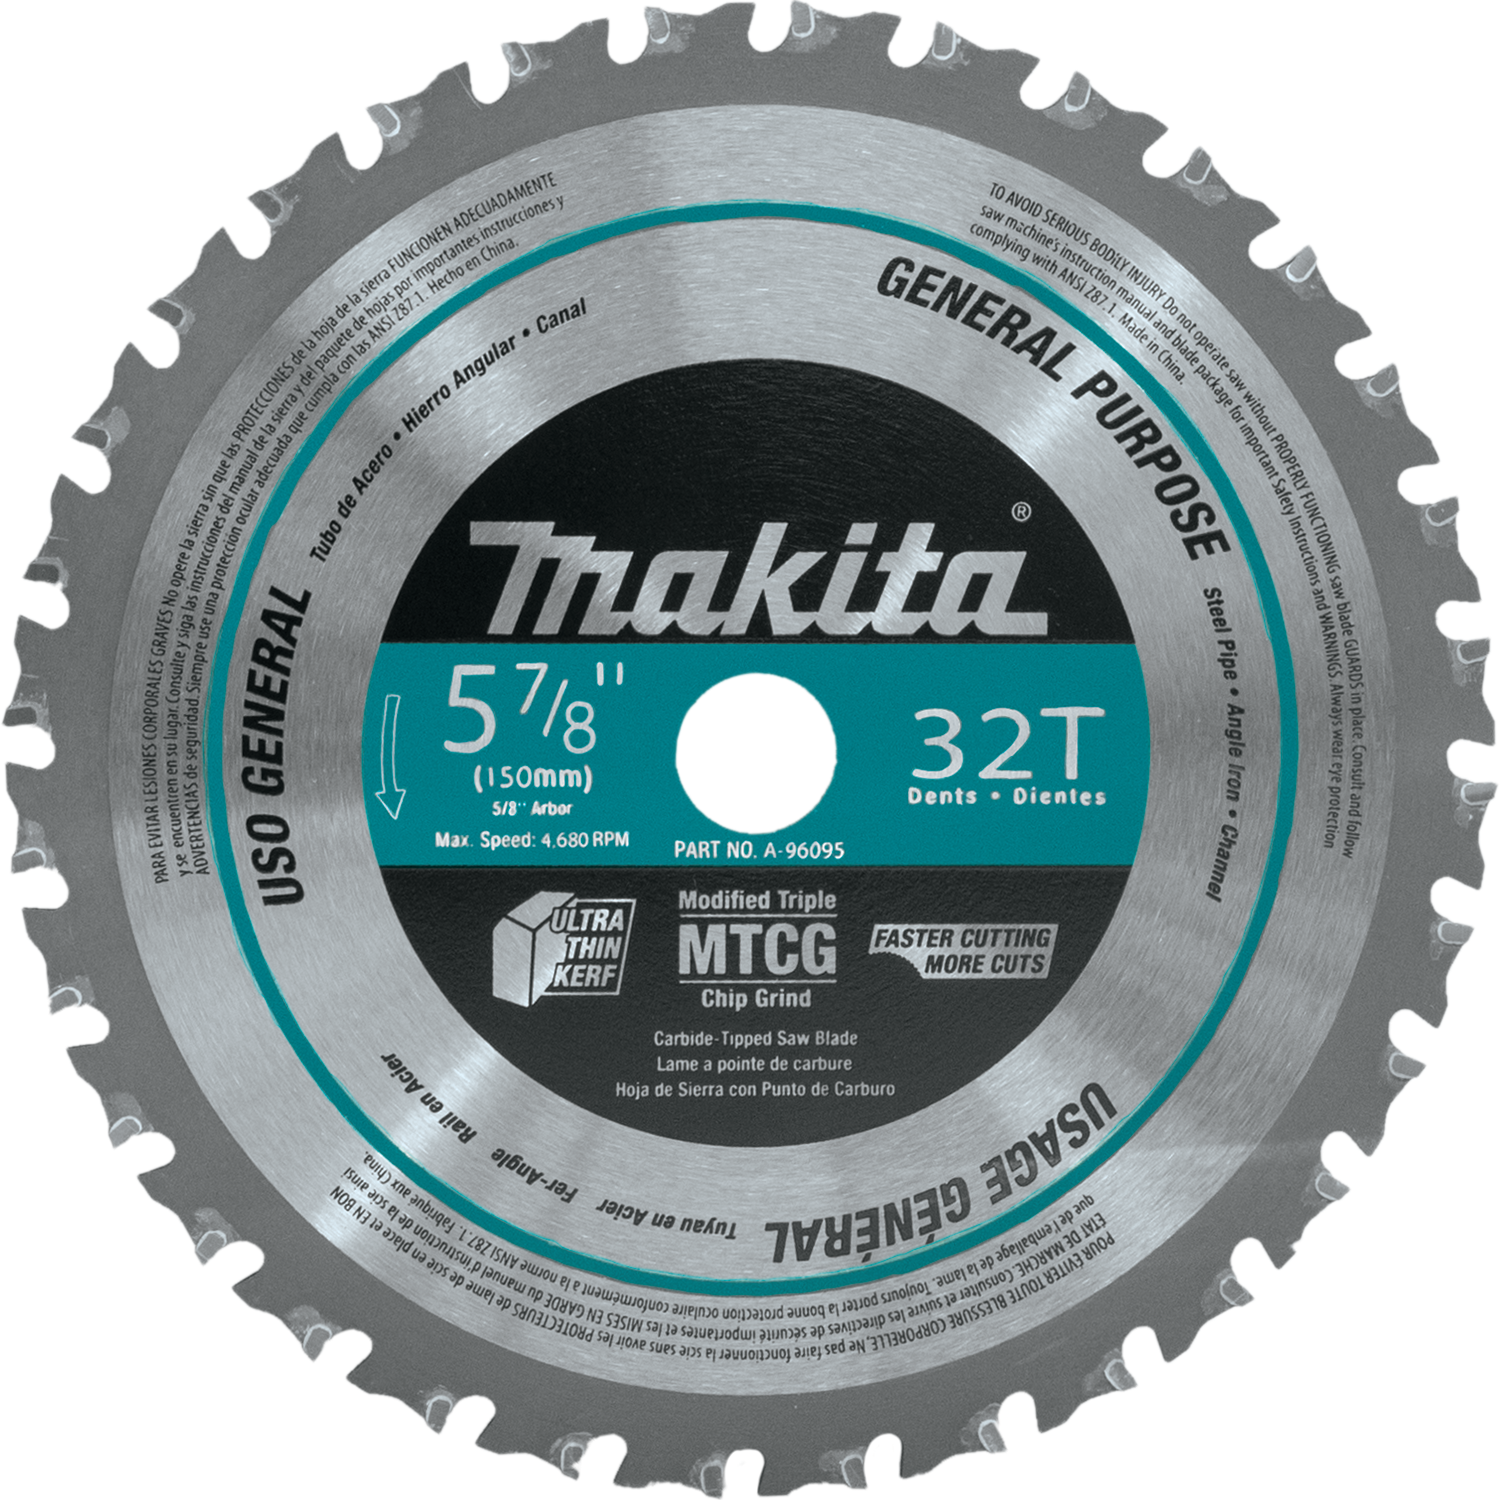 Makita usa product details a 96095 a 96095 greentooth Image collections